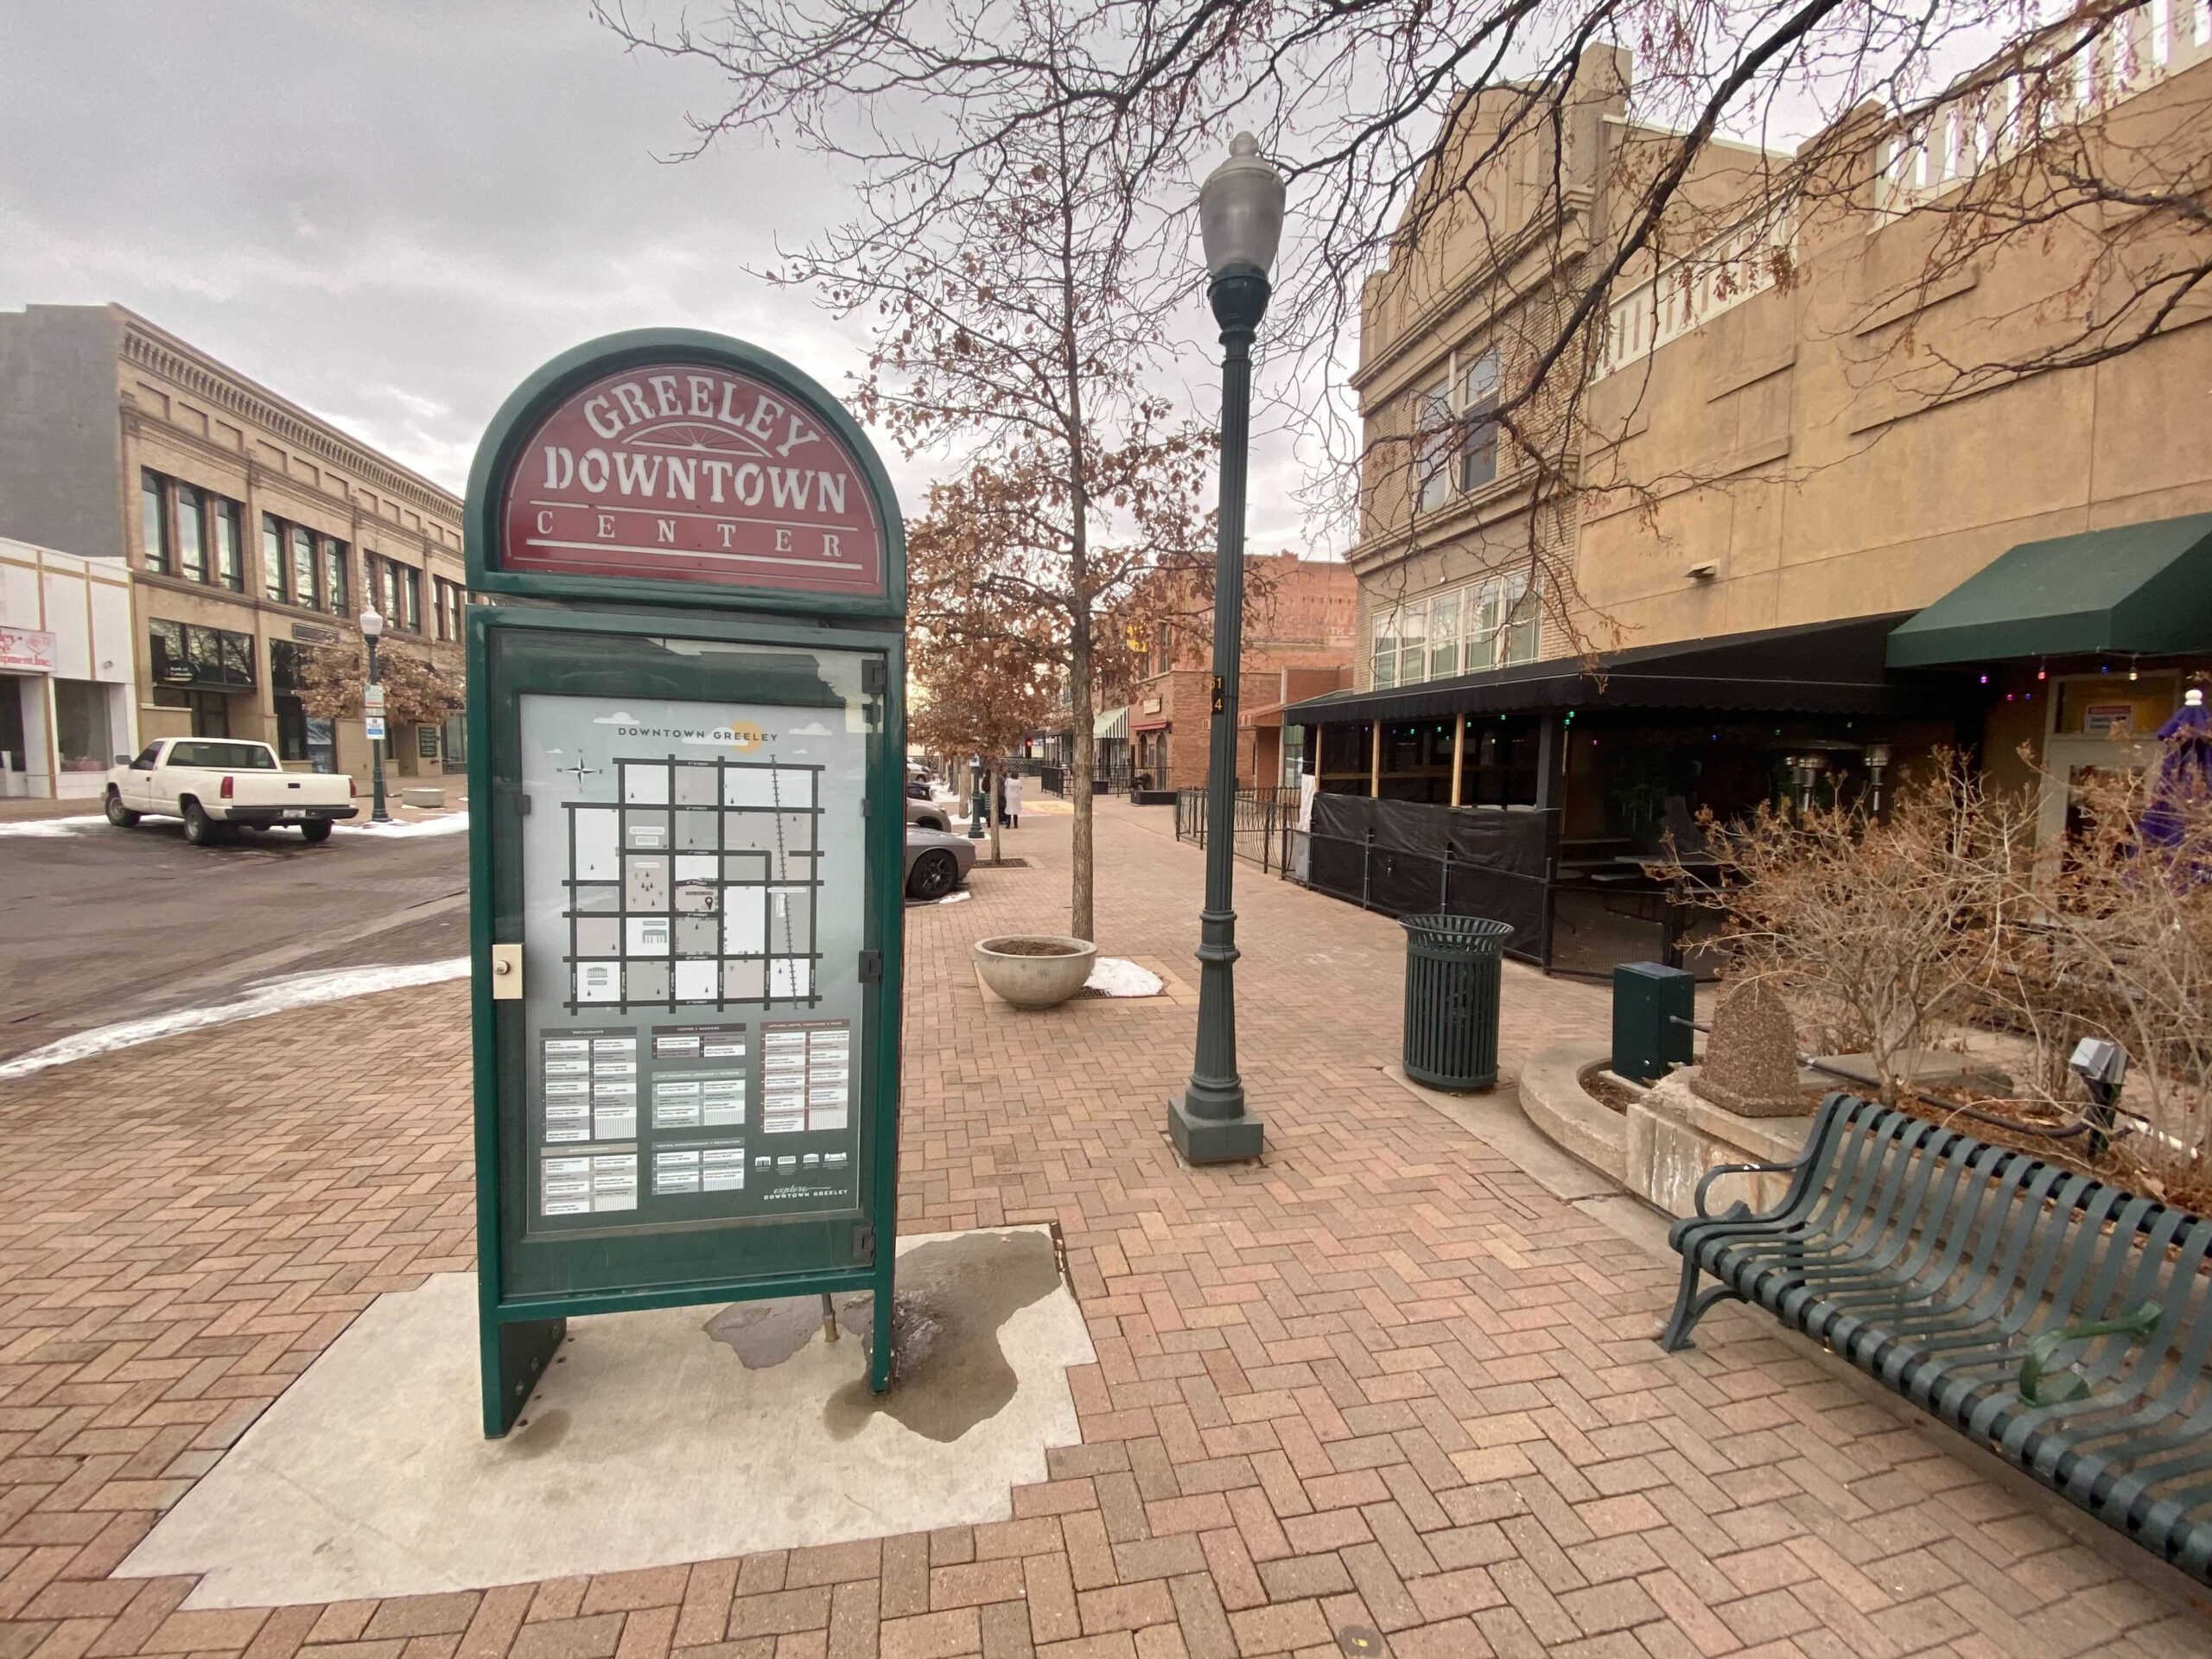 Downtown Greeley on the morning of the second impeachment of President Donald Trump. Greeley is in Weld County, which voted overwhelmingly in favor of re-electing Donald Trump in November's election.